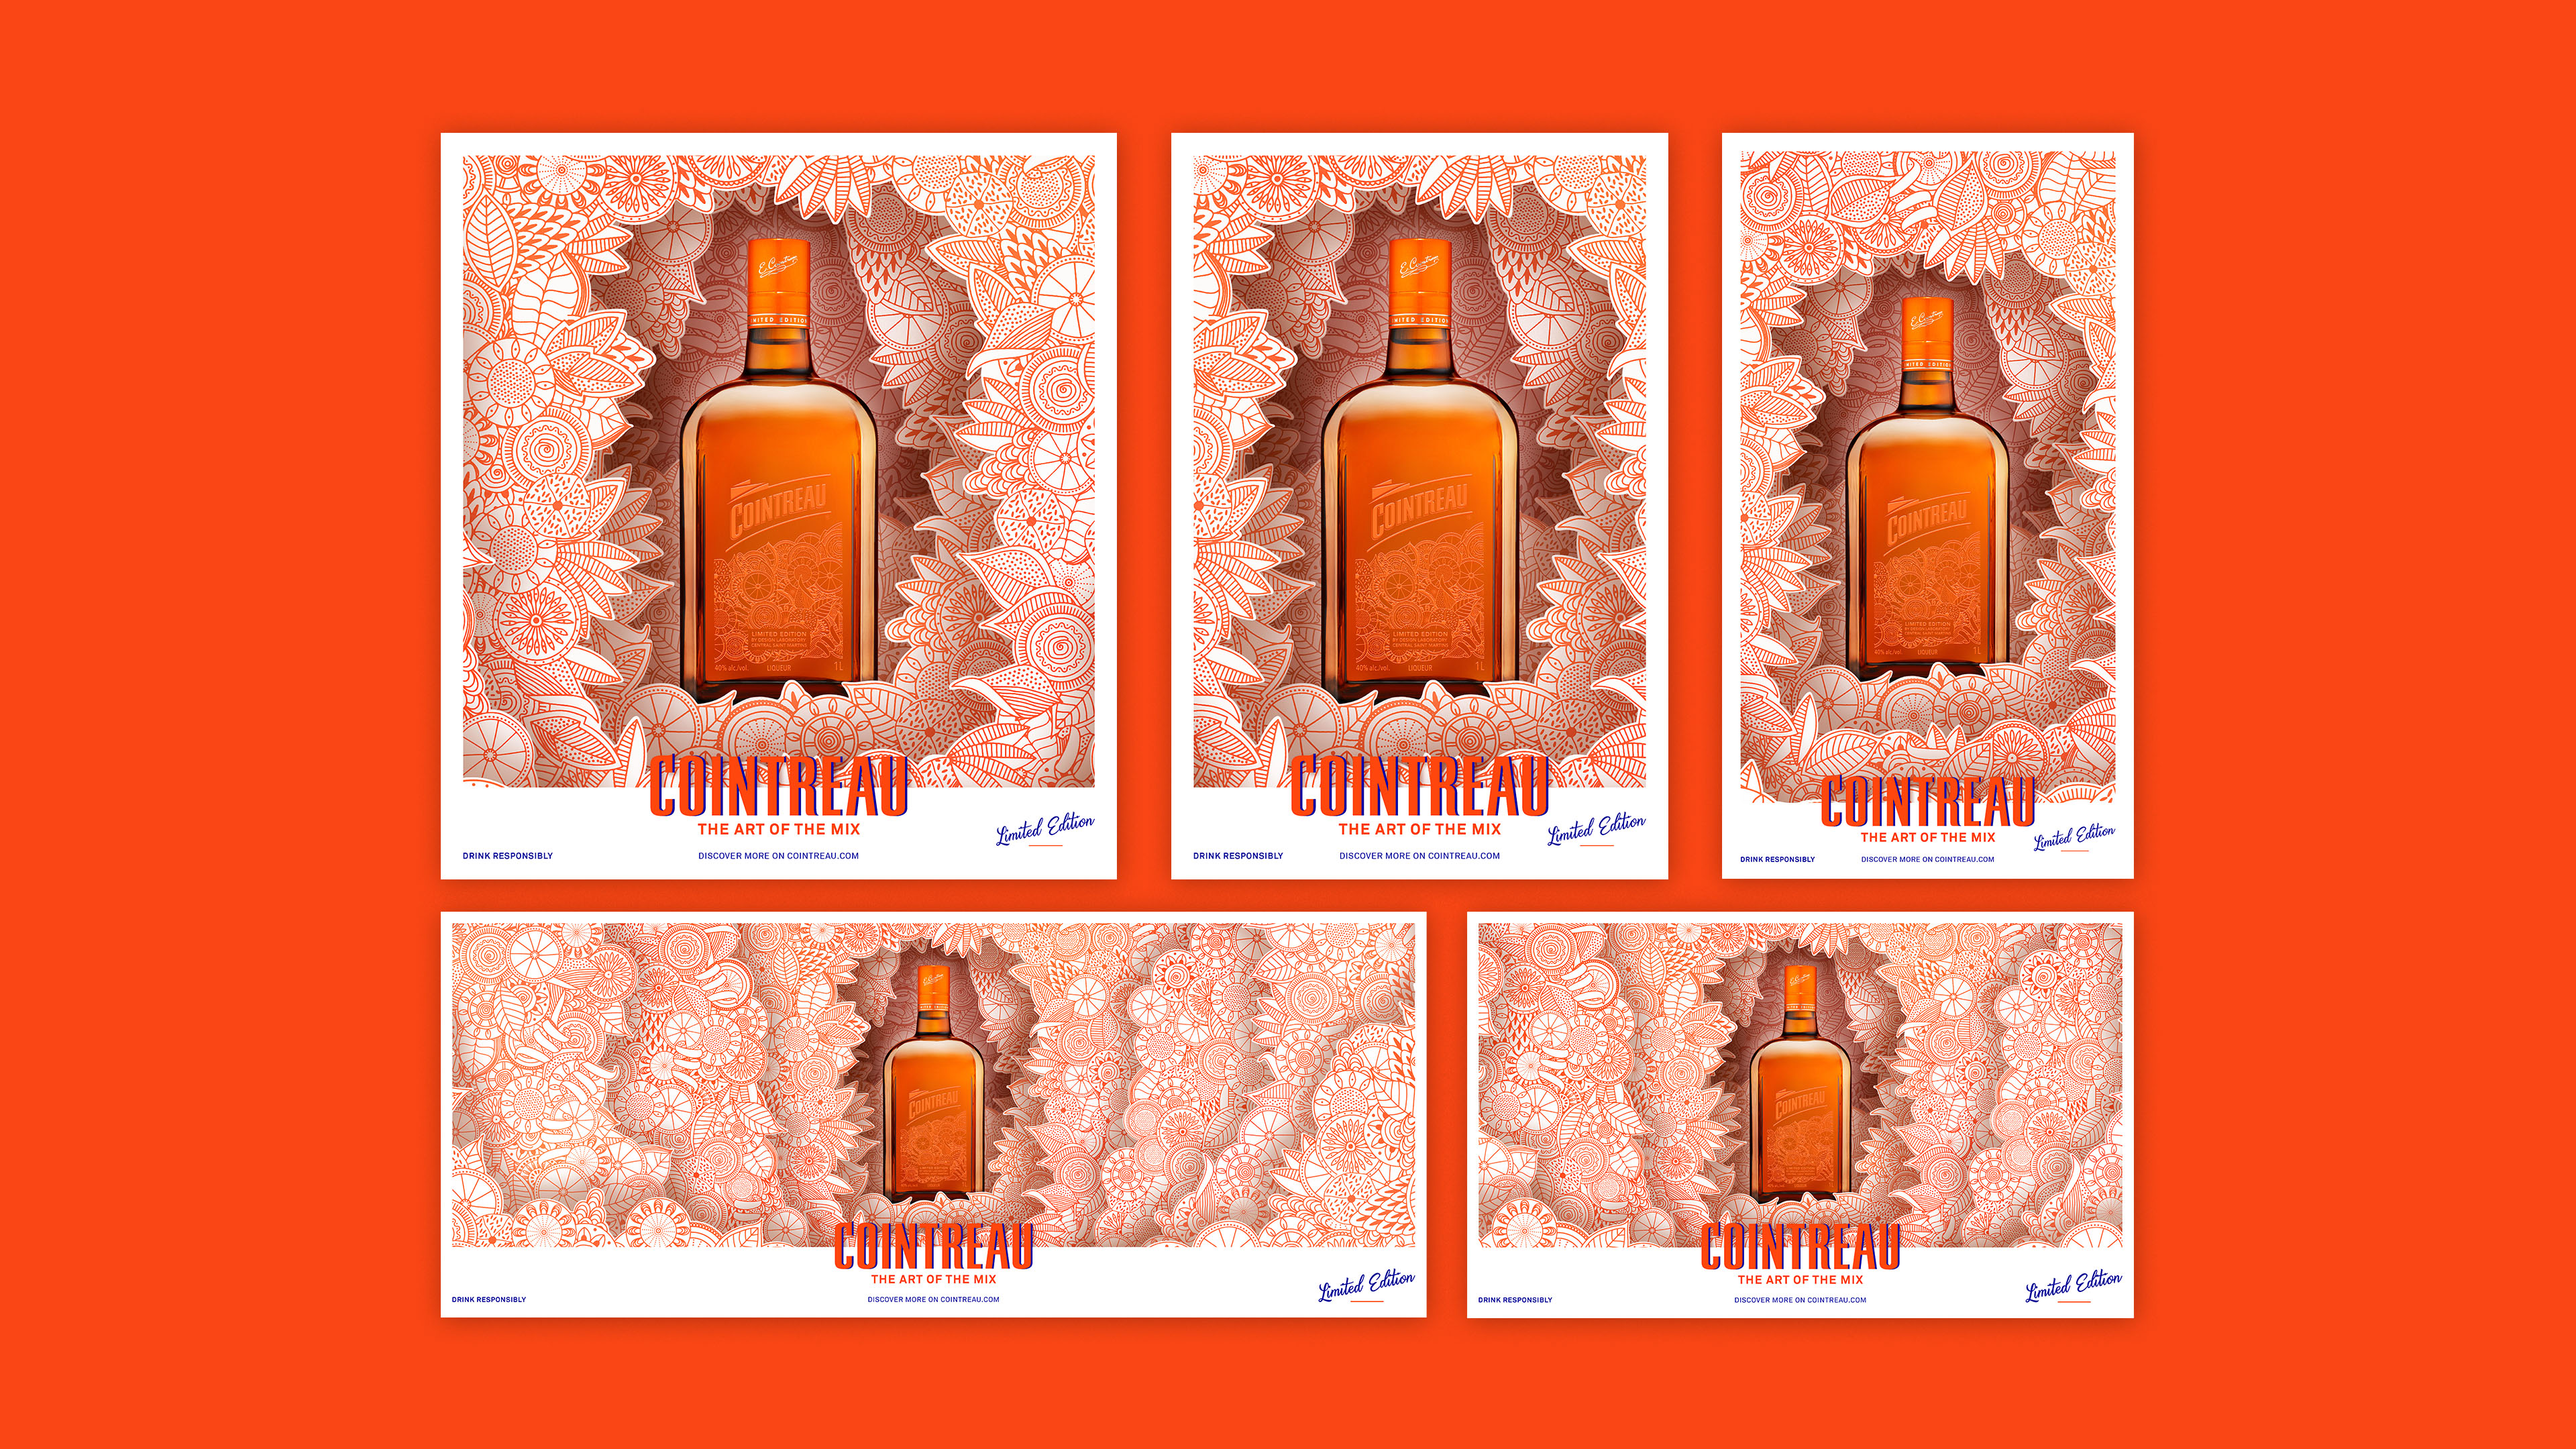 4K Gallery Cointreau_0000s_0000_KV Layout - English 3.4_Cointreau Square KV Crop